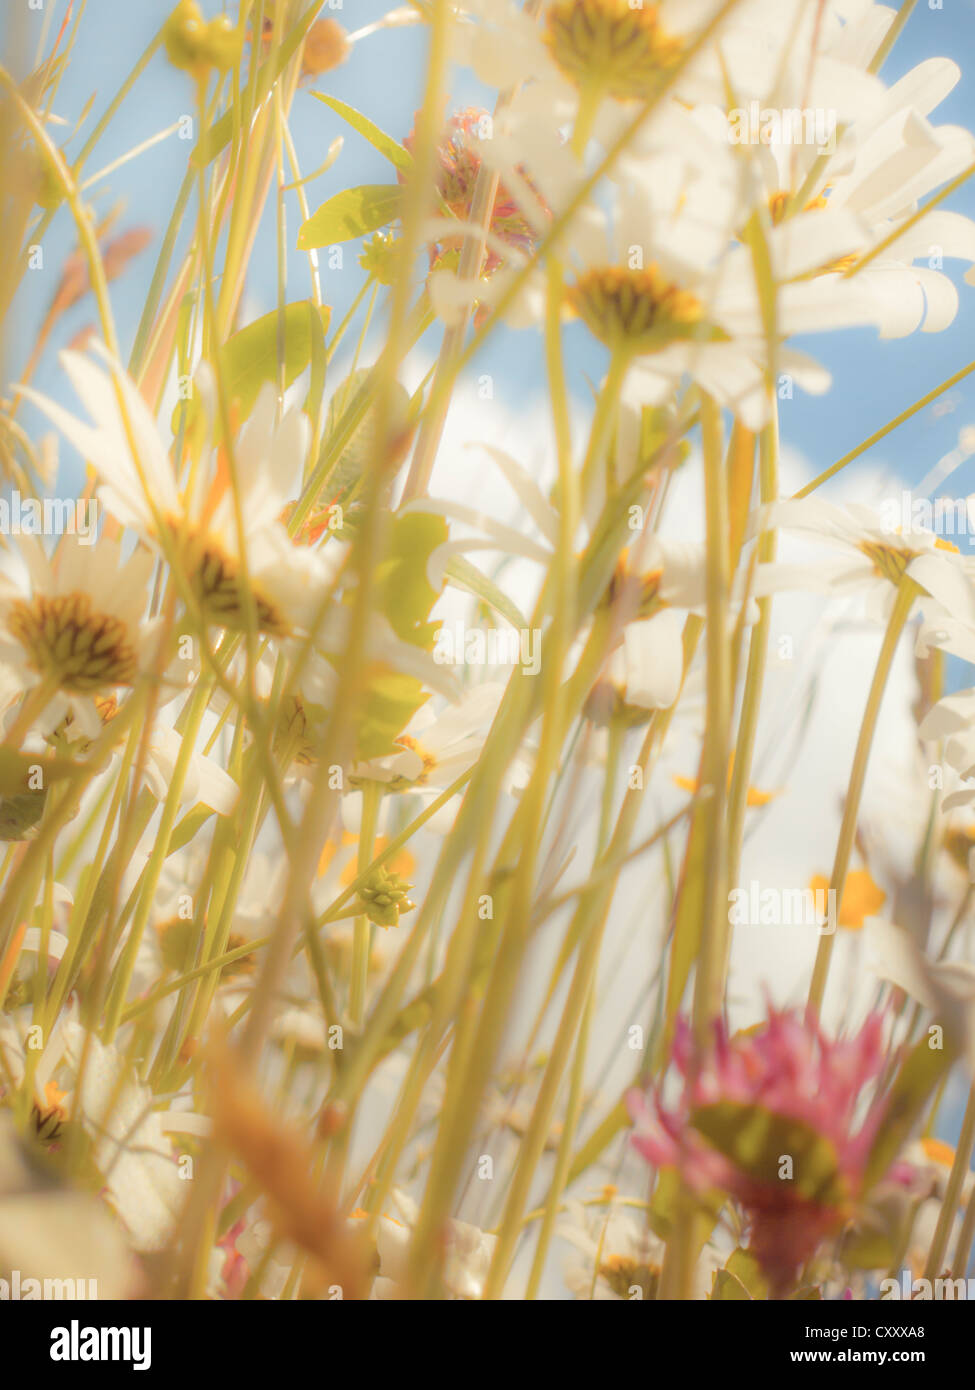 Daisies (Leucanthemum vulgare), flower meadow, from below, worm's eye view, soft look effect - Stock Image